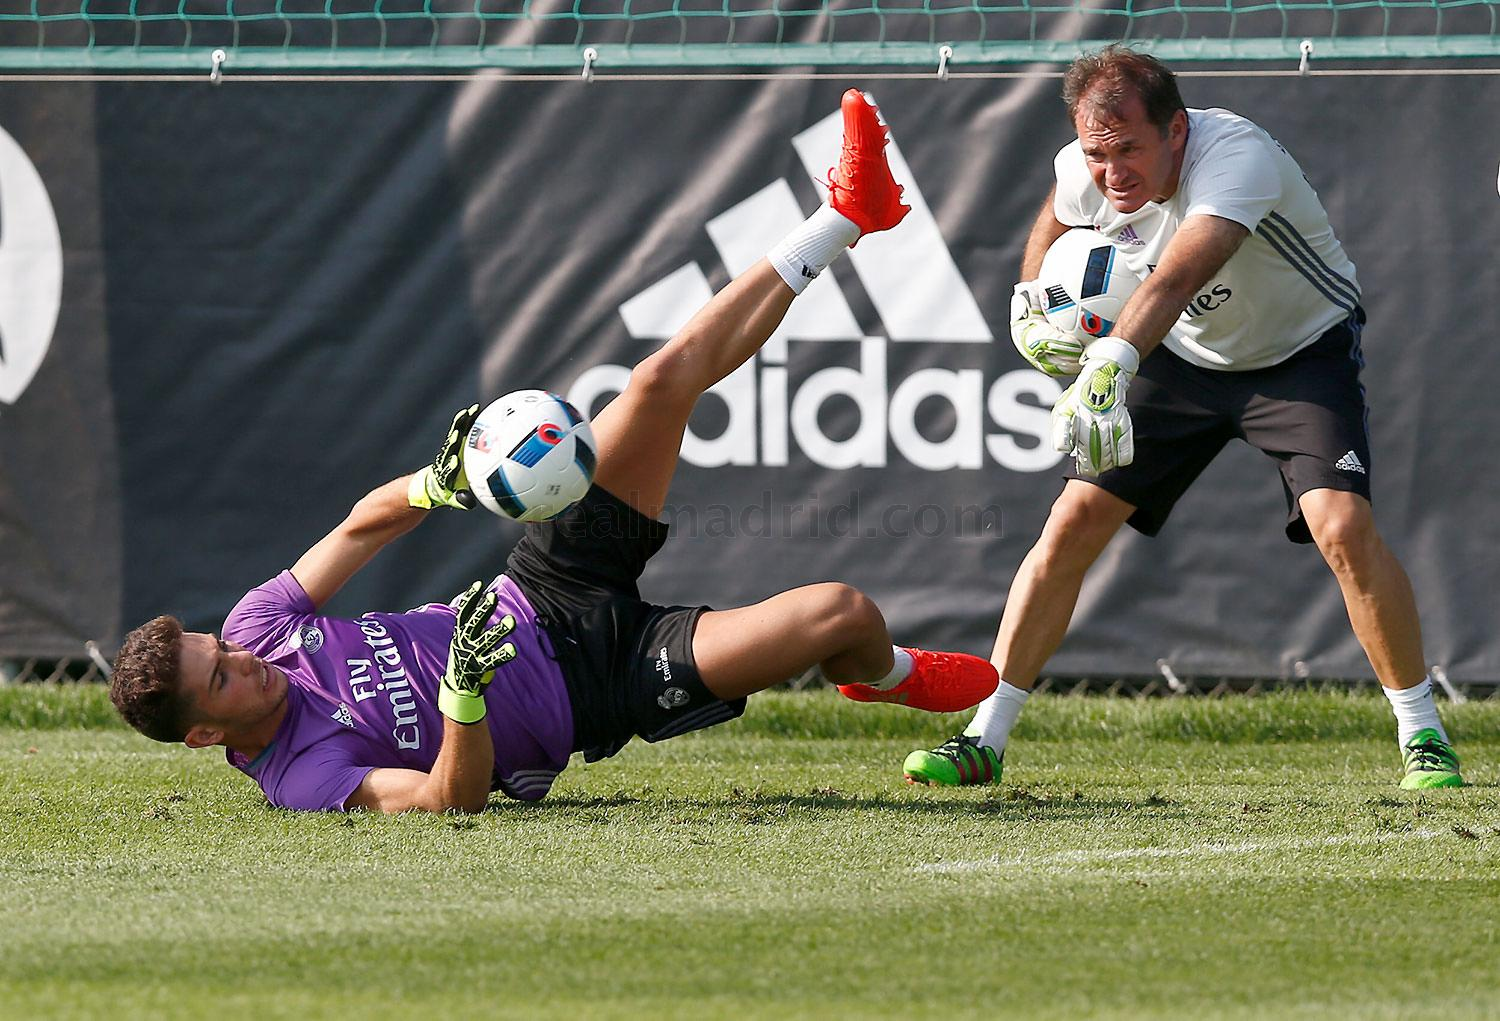 Real Madrid - Entrenamiento del Real Madrid en Montreal - 21-07-2016